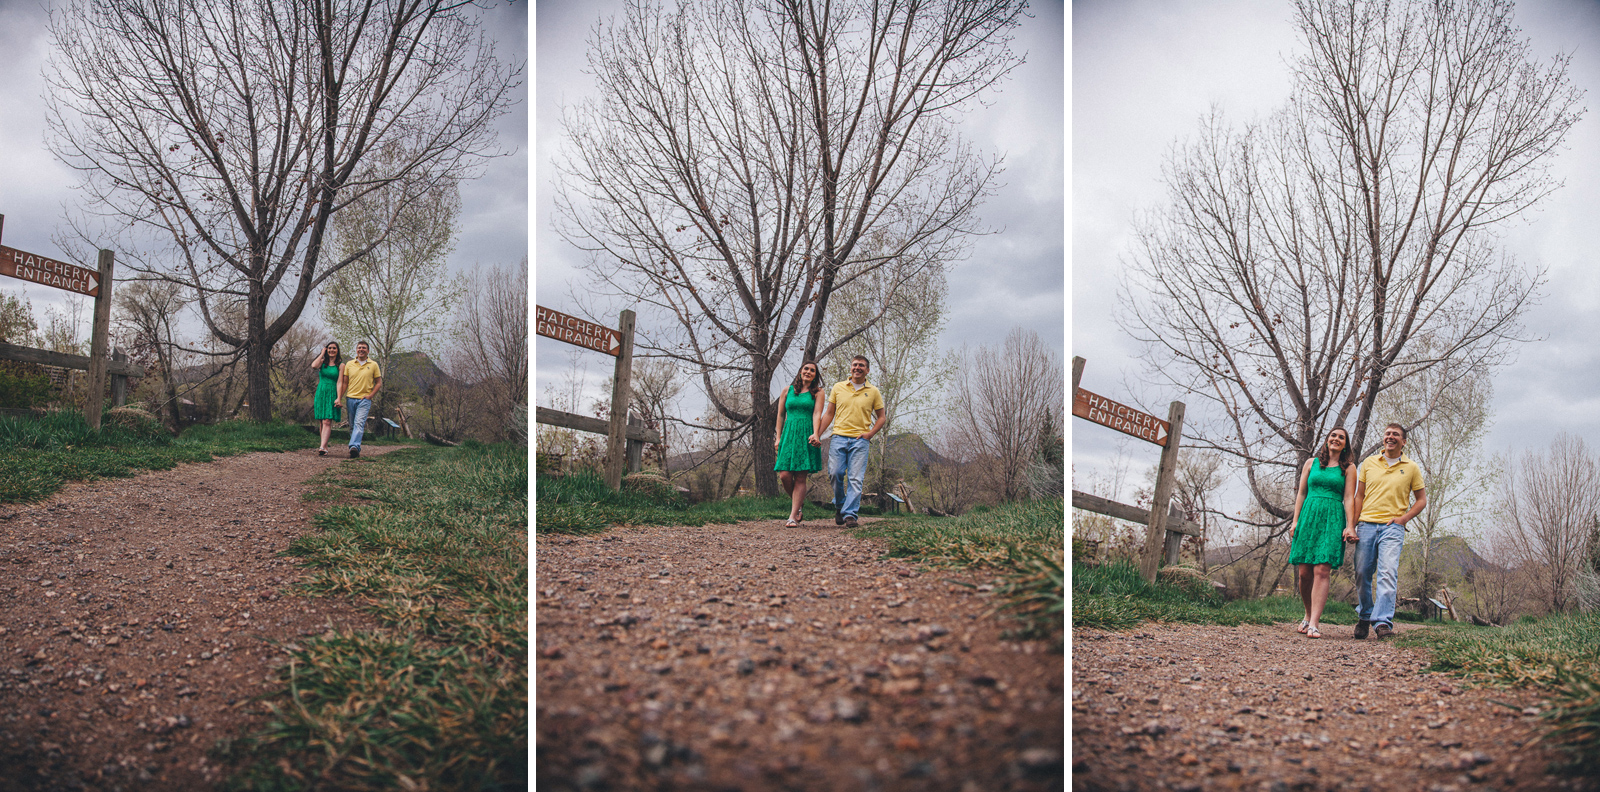 014-engagement-trees-fun-laughing-durango-colorado-farmington